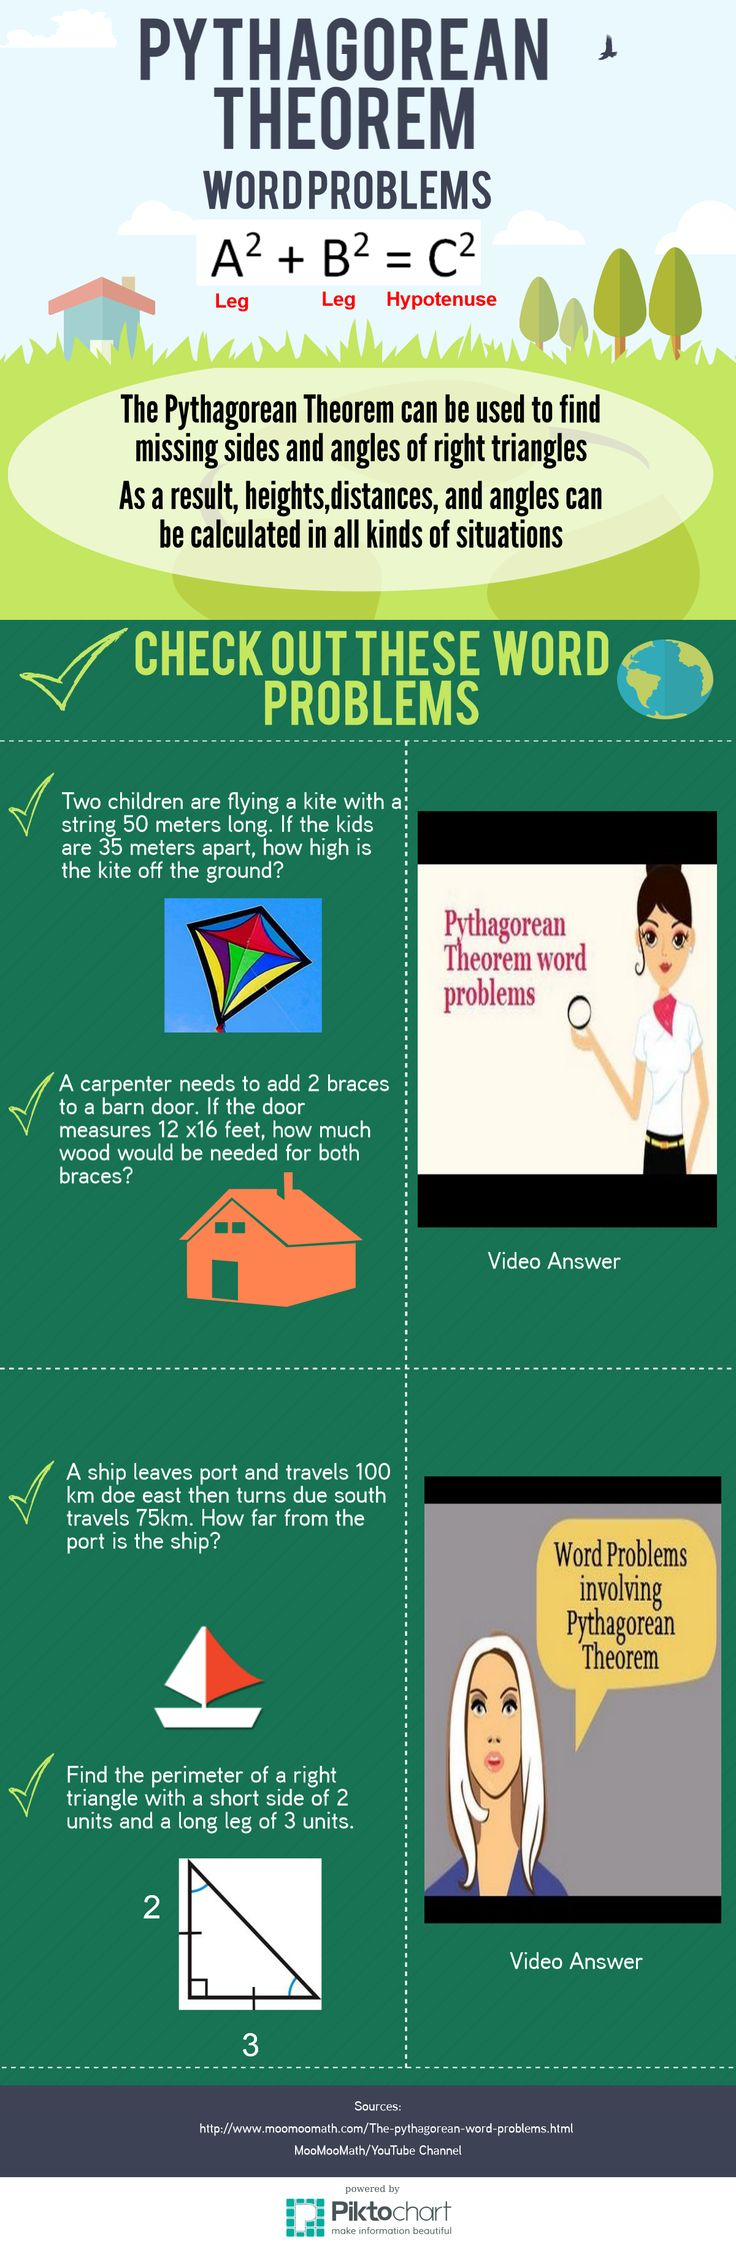 The Pythagorean Theorem can be used in Geometry to solve many word problems.